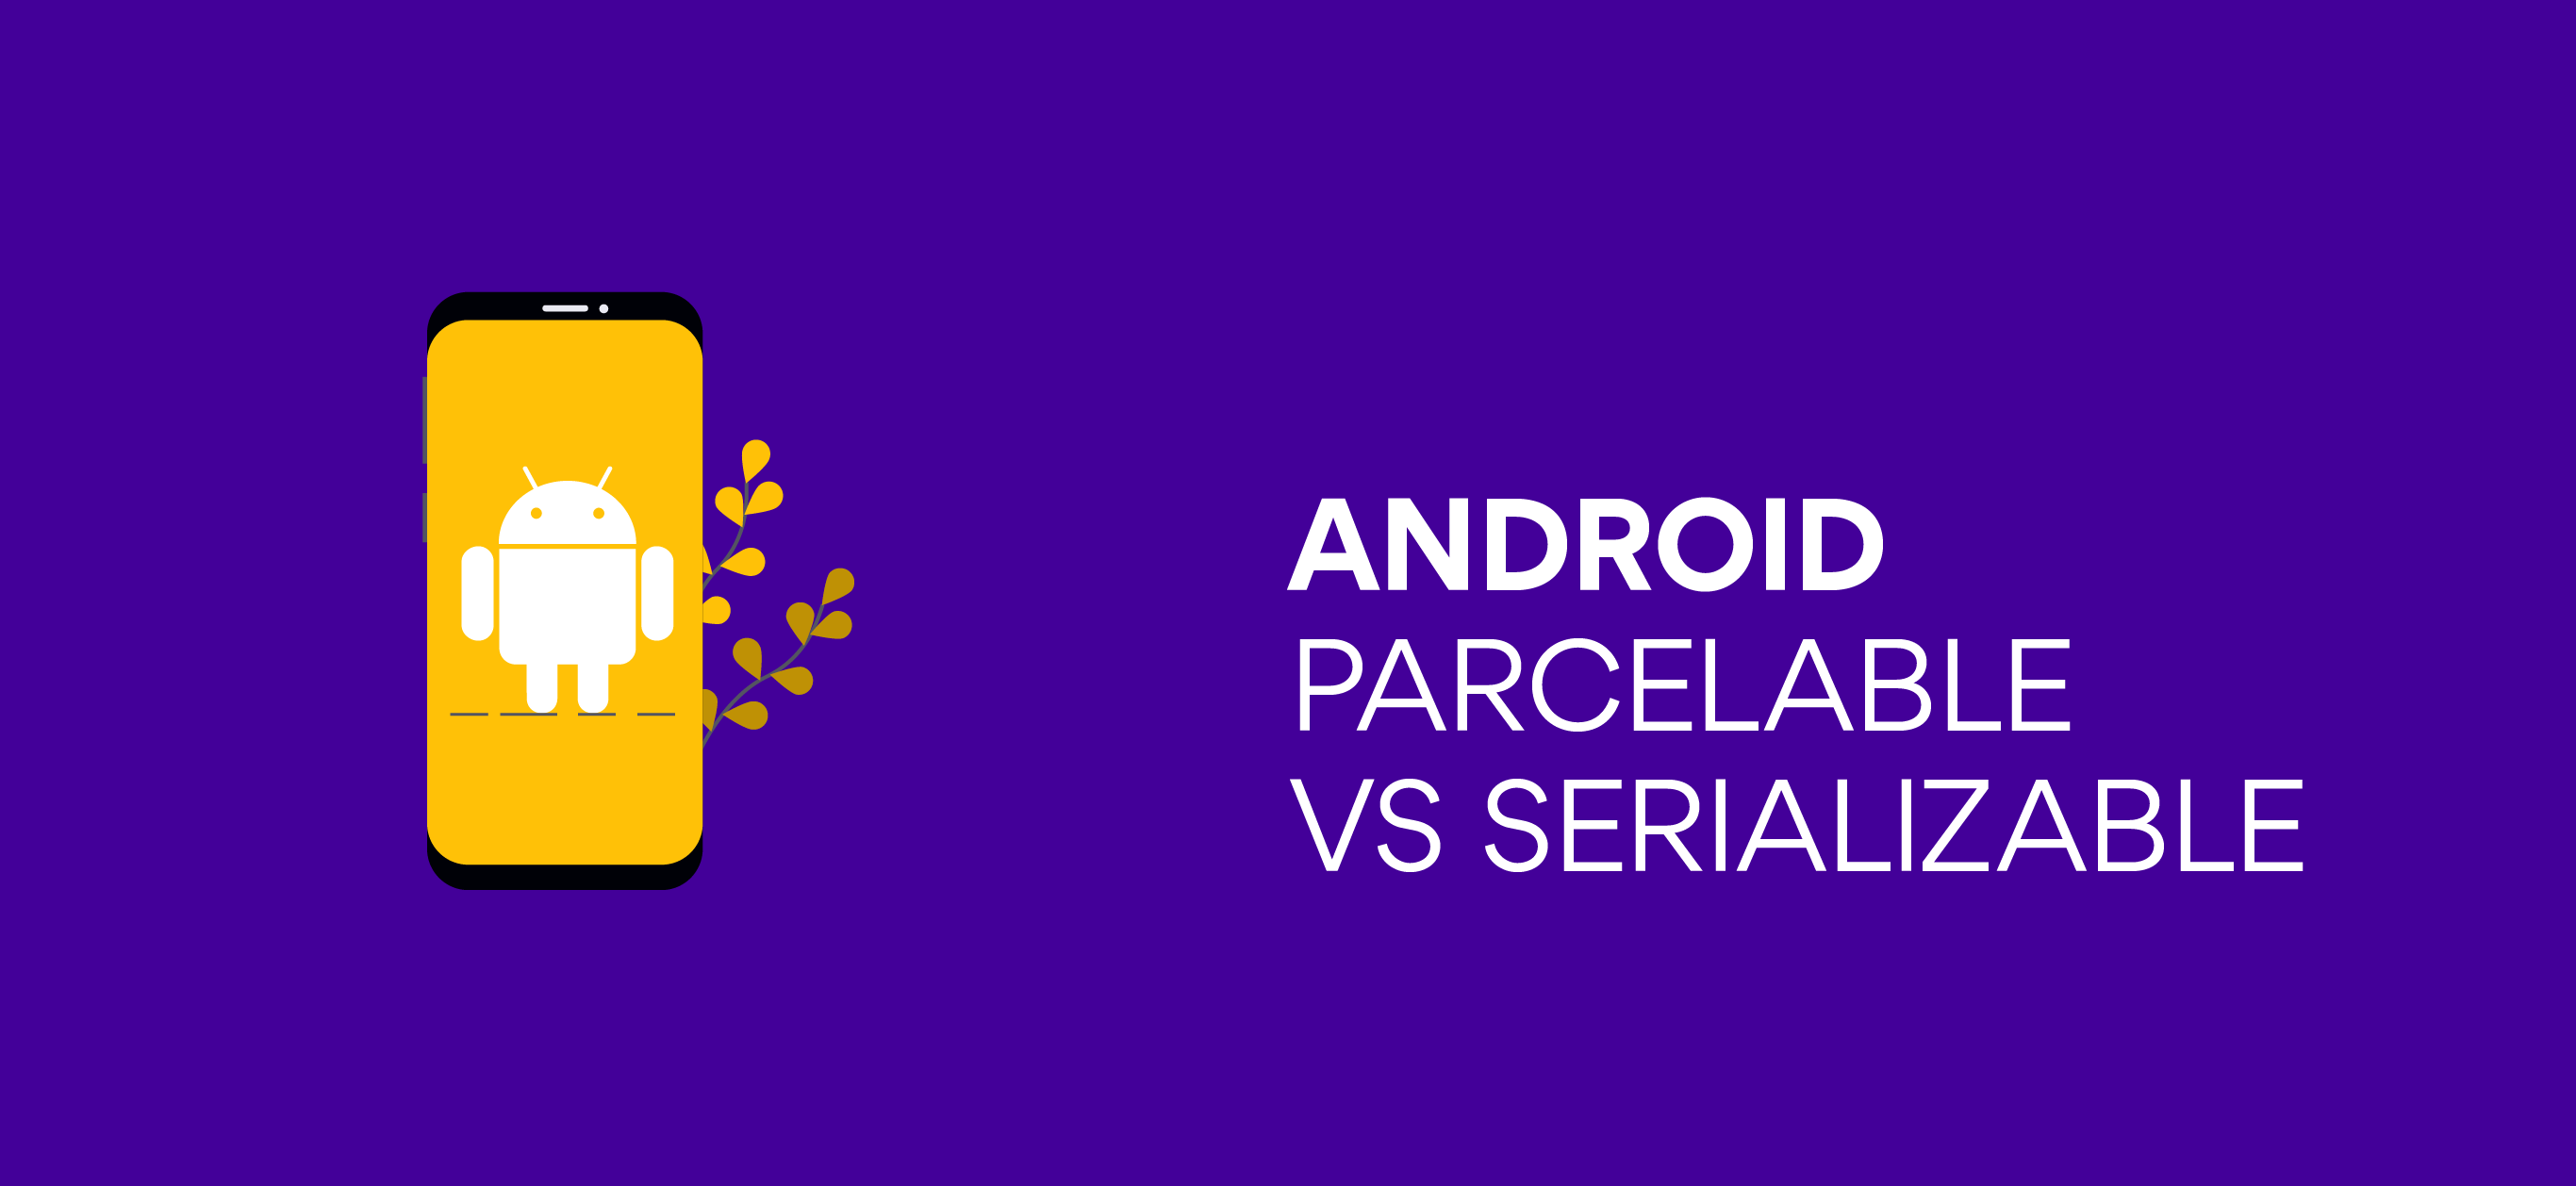 Parcelable vs Serializable – Podstawy Androida